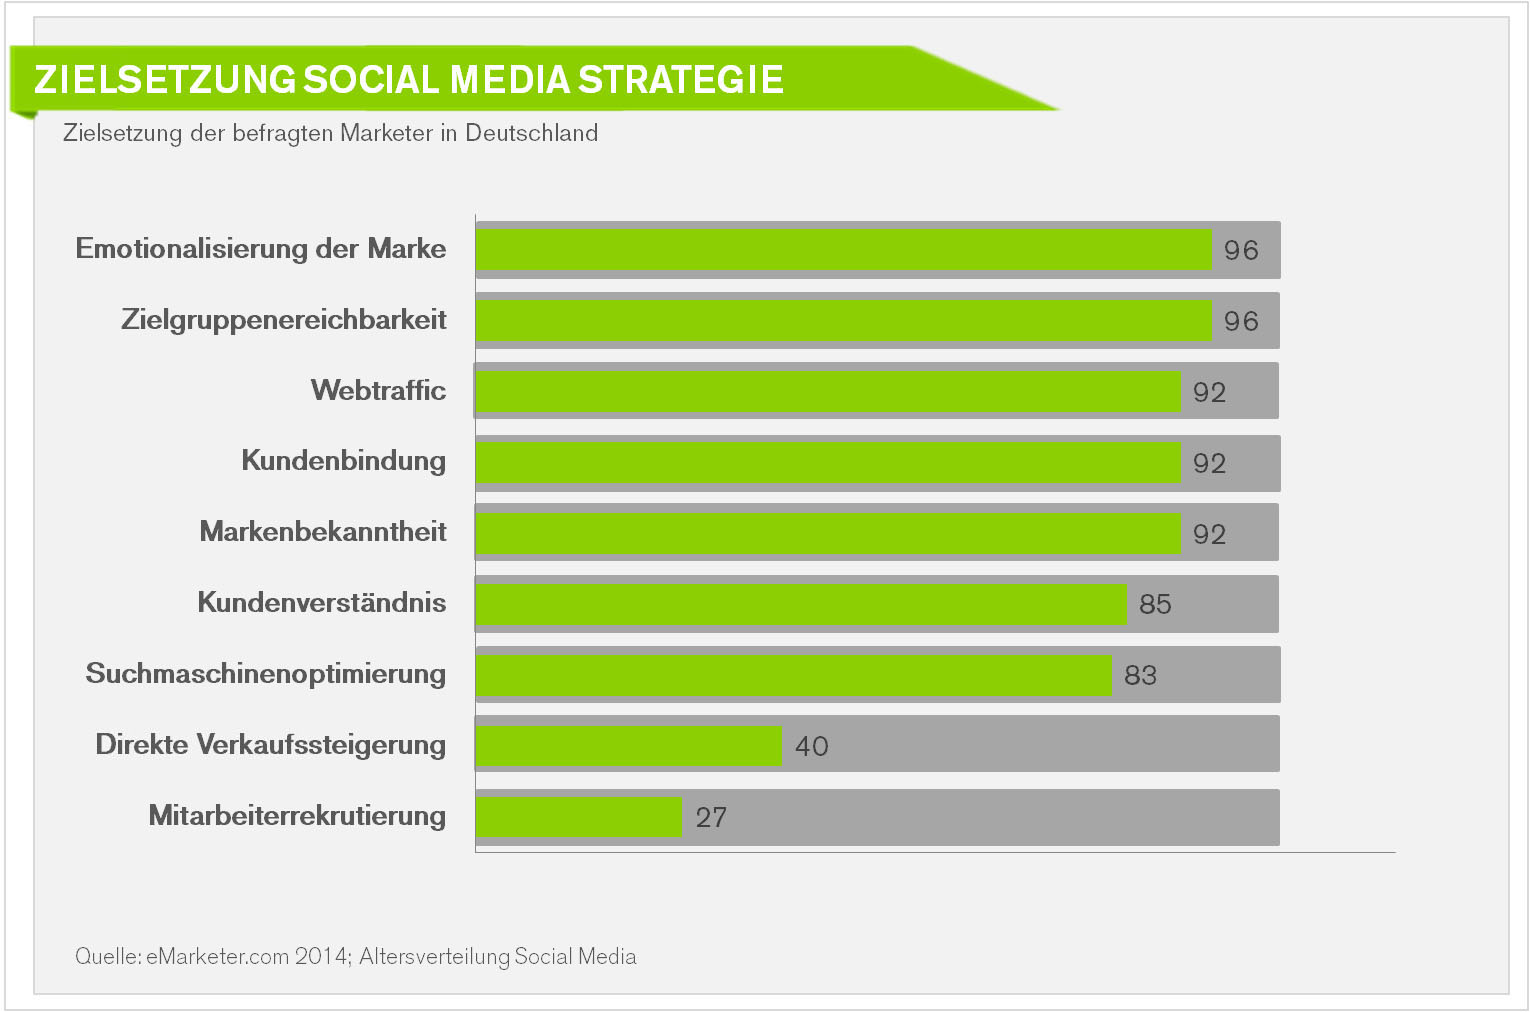 Strategie-Zielsetzung-Social-Media-B2B-B2C-Marketing-Unternehmen-Deutschland%E2%80%93Grafik-Statistik.jpg